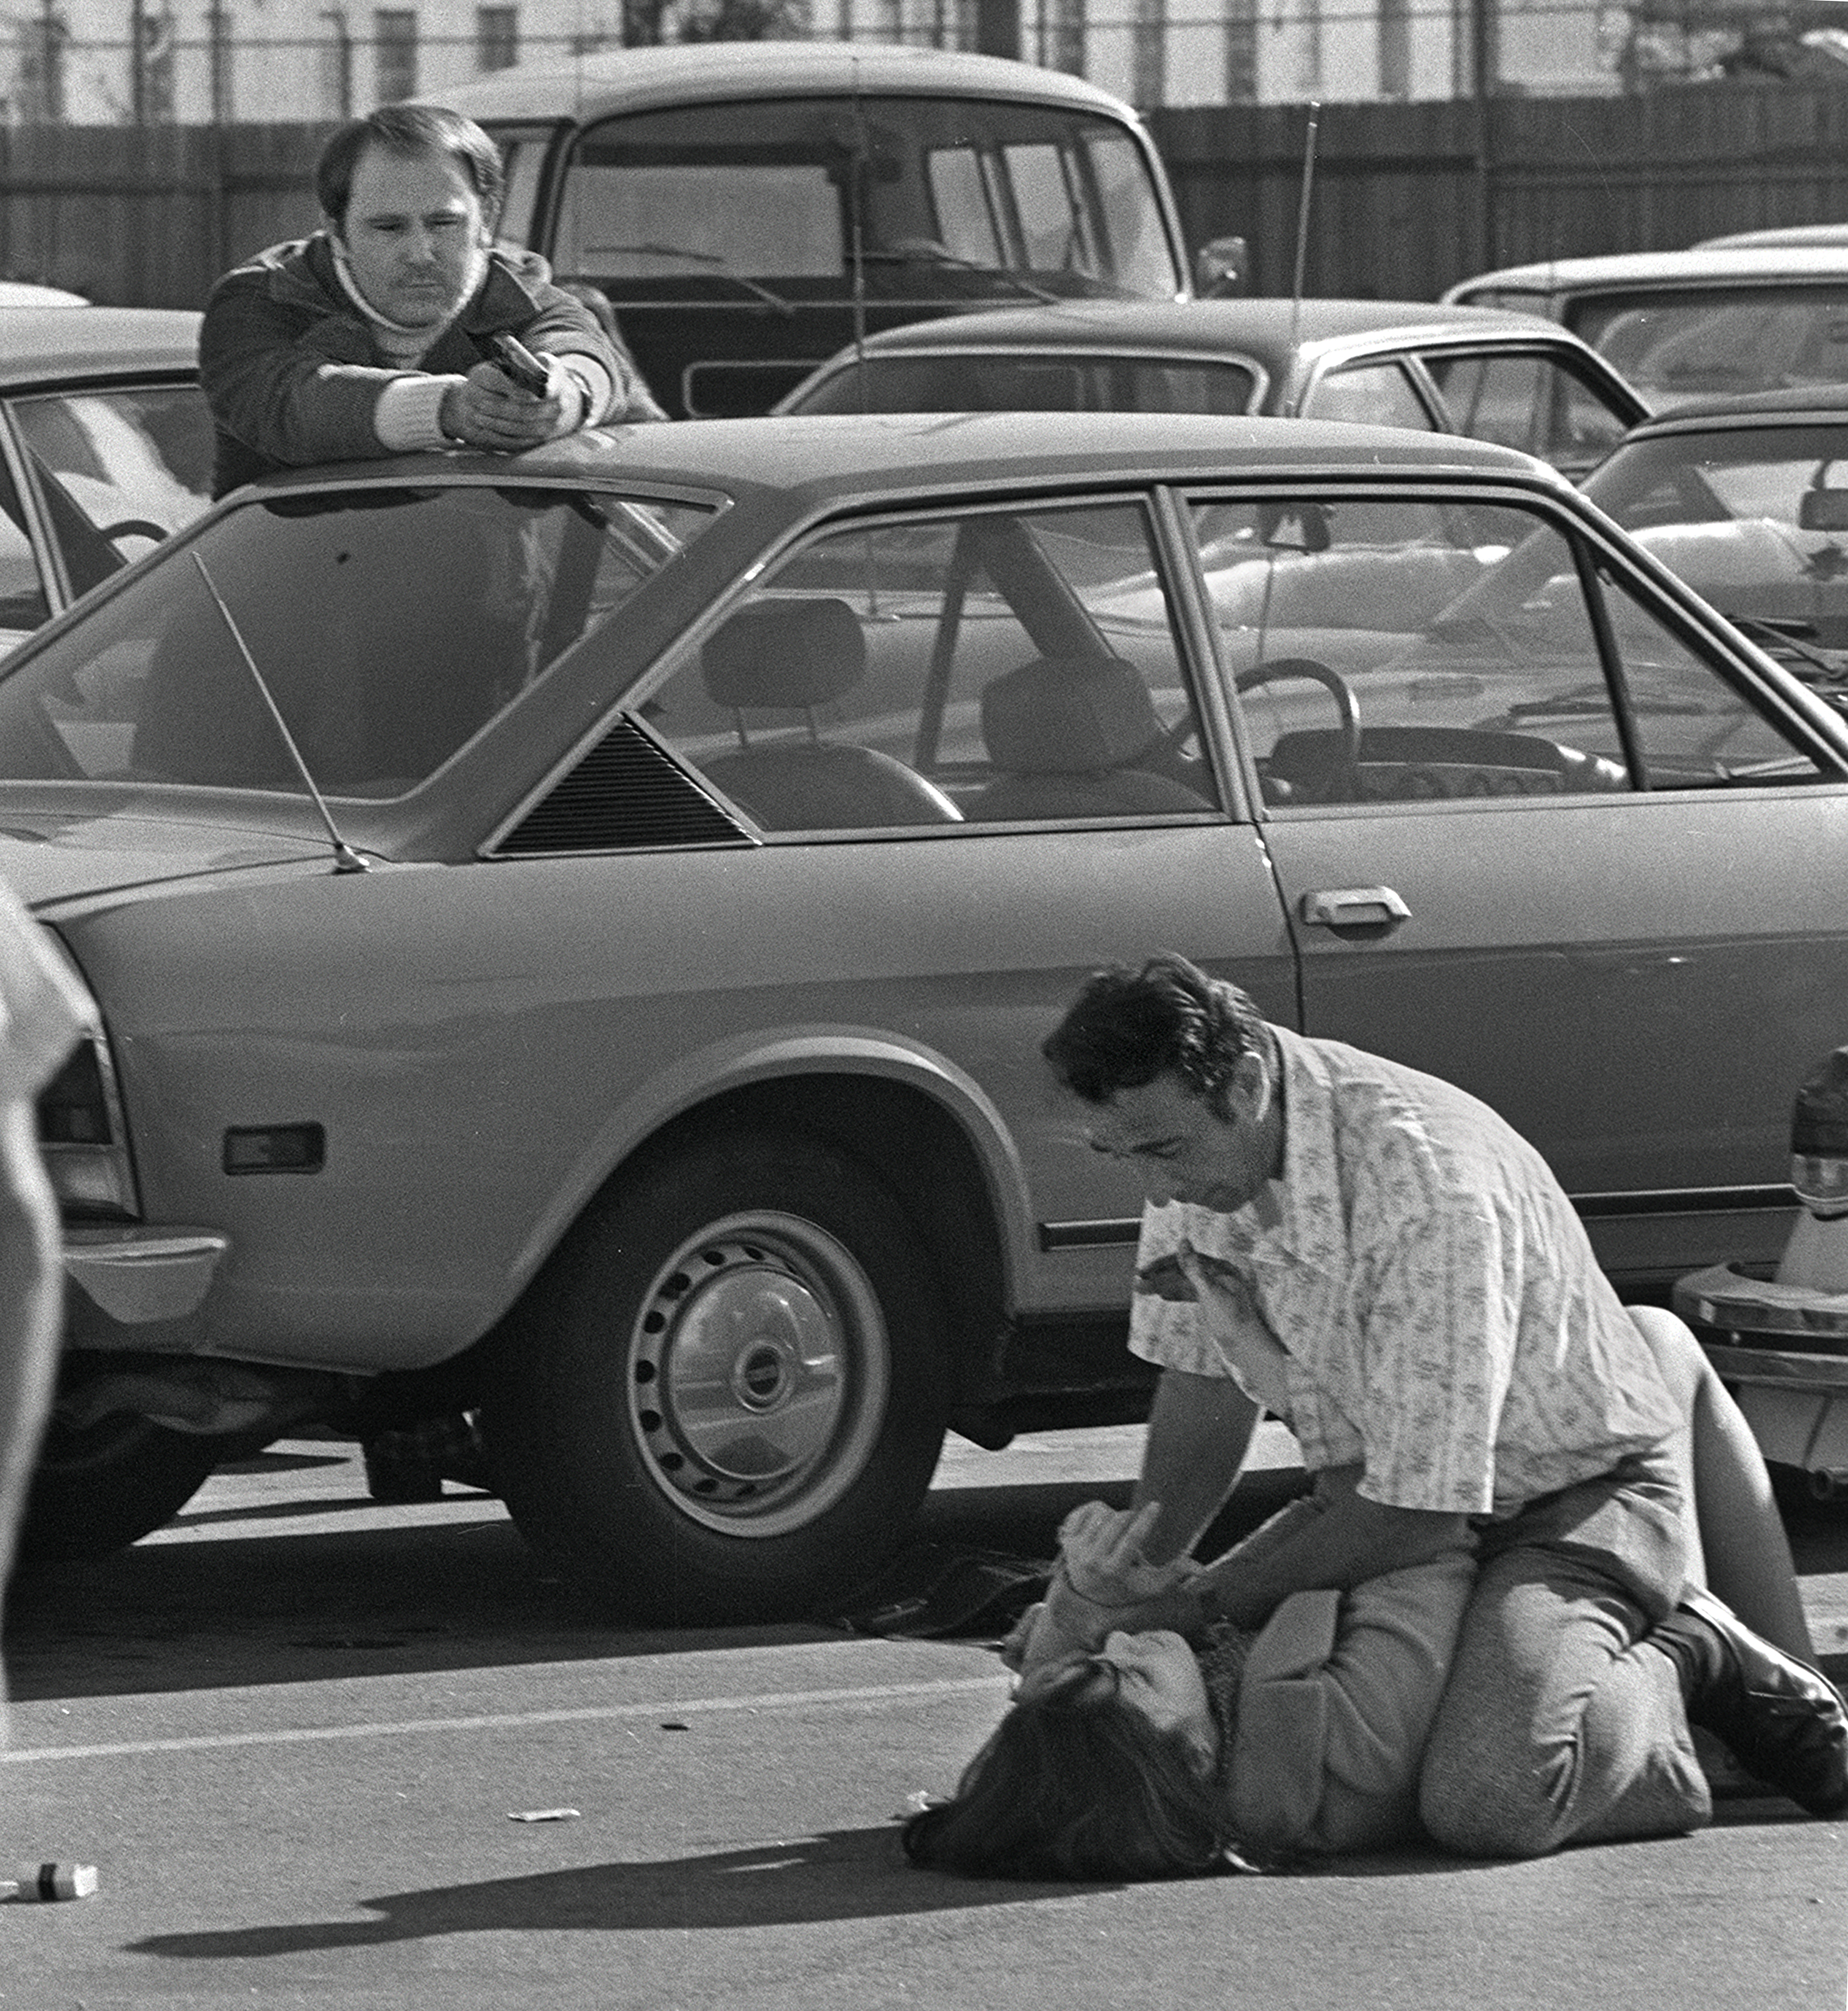 George H. Derby, left, a security guard, aims his gun at Edward F. Fisher, 39, who holds a knife to the throat of Ellen Sheldon, 22, during a kidnapping attempt in a Hollywood parking lot, Nov. 23, 1973. Sheldon managed to struggle to her feet, and seconds later Derby fired once after warning the suspect repeatedly. Fisher was killed instantly; Sheldon sustained minor injuries. (Anthony K. Roberts via AP)